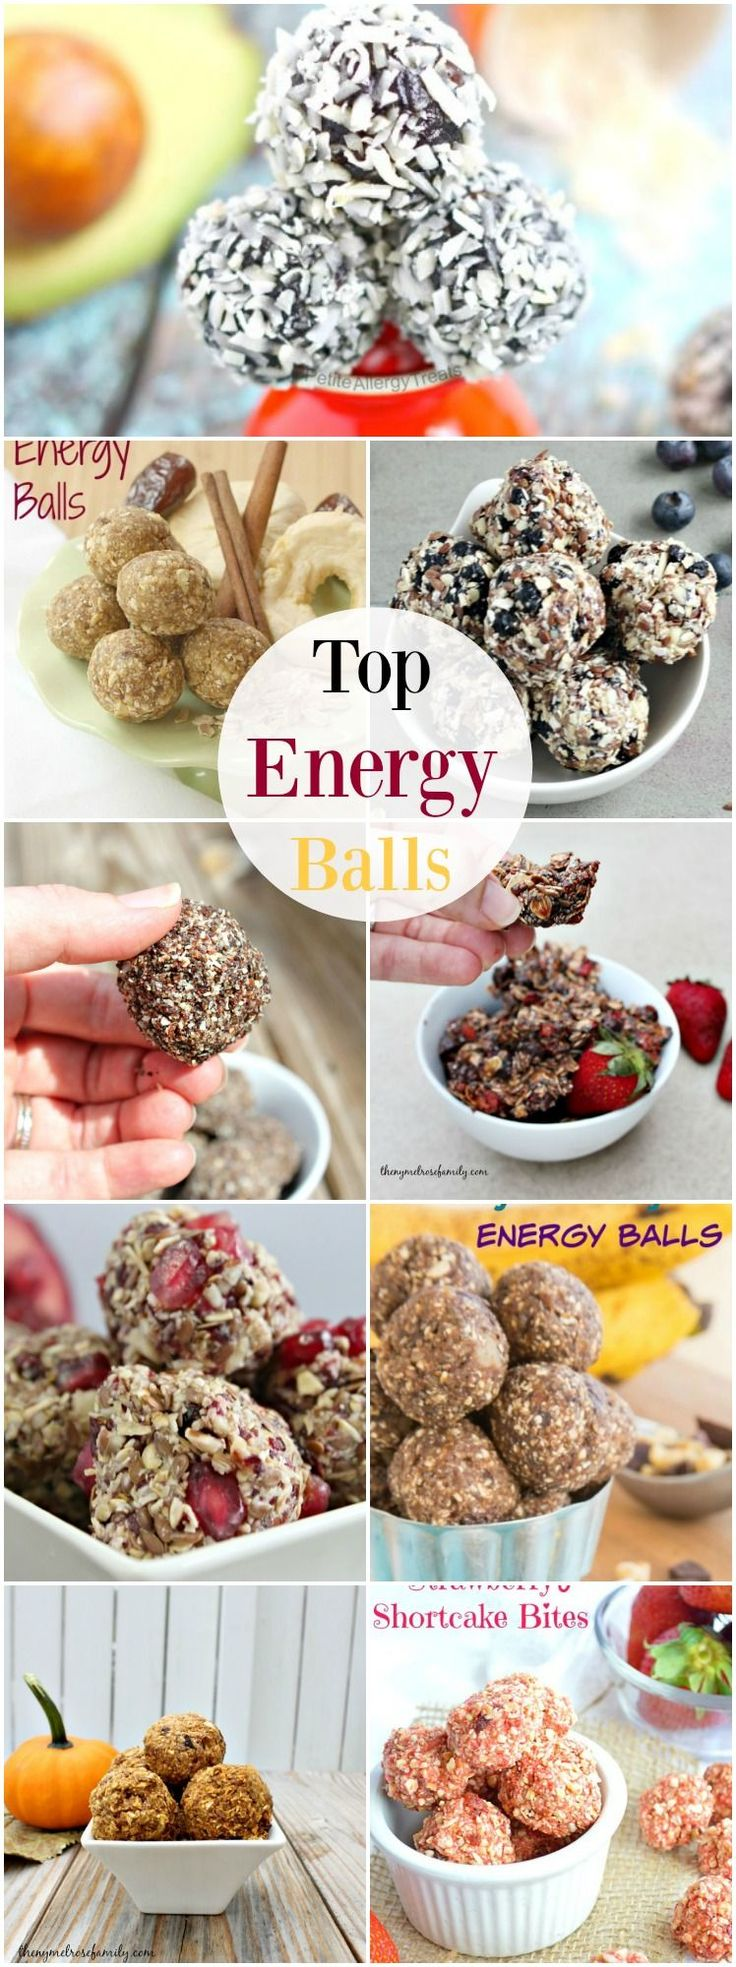 Top Energy Balls perfect for healthy snacks to get you on track in 2016